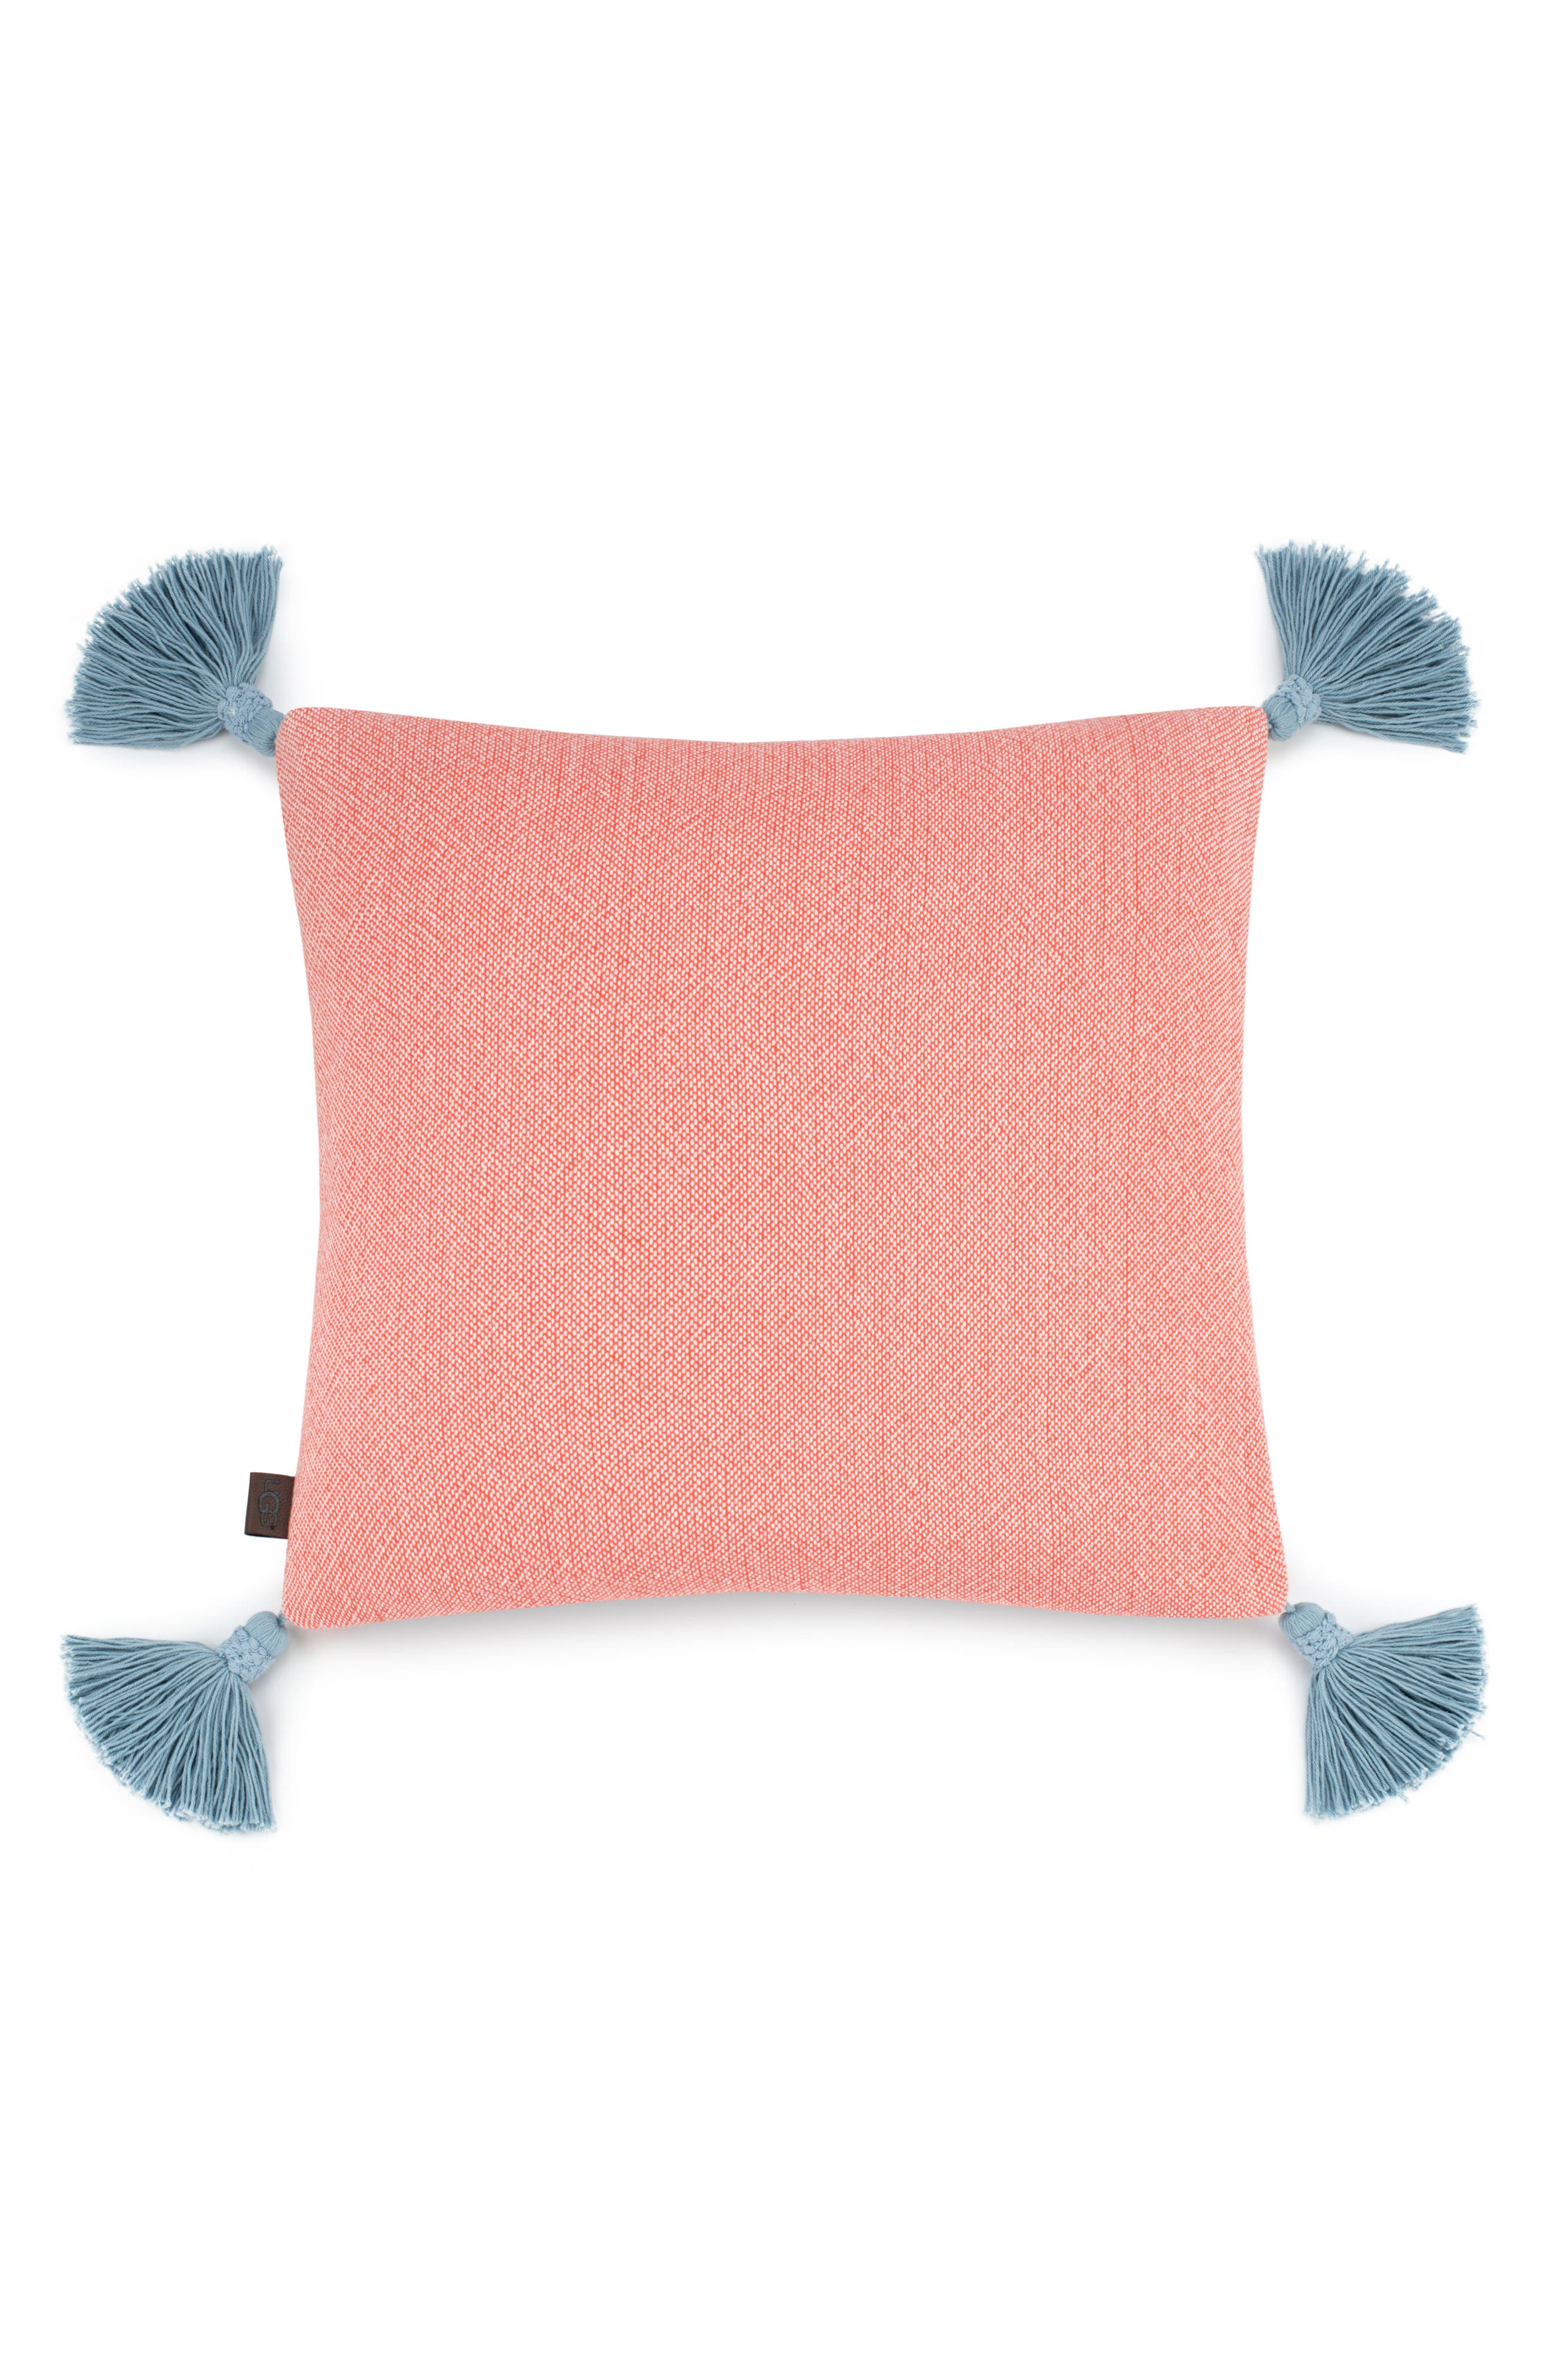 Skylar Accent Pillow,                         Main,                         color, Vibrant Coral